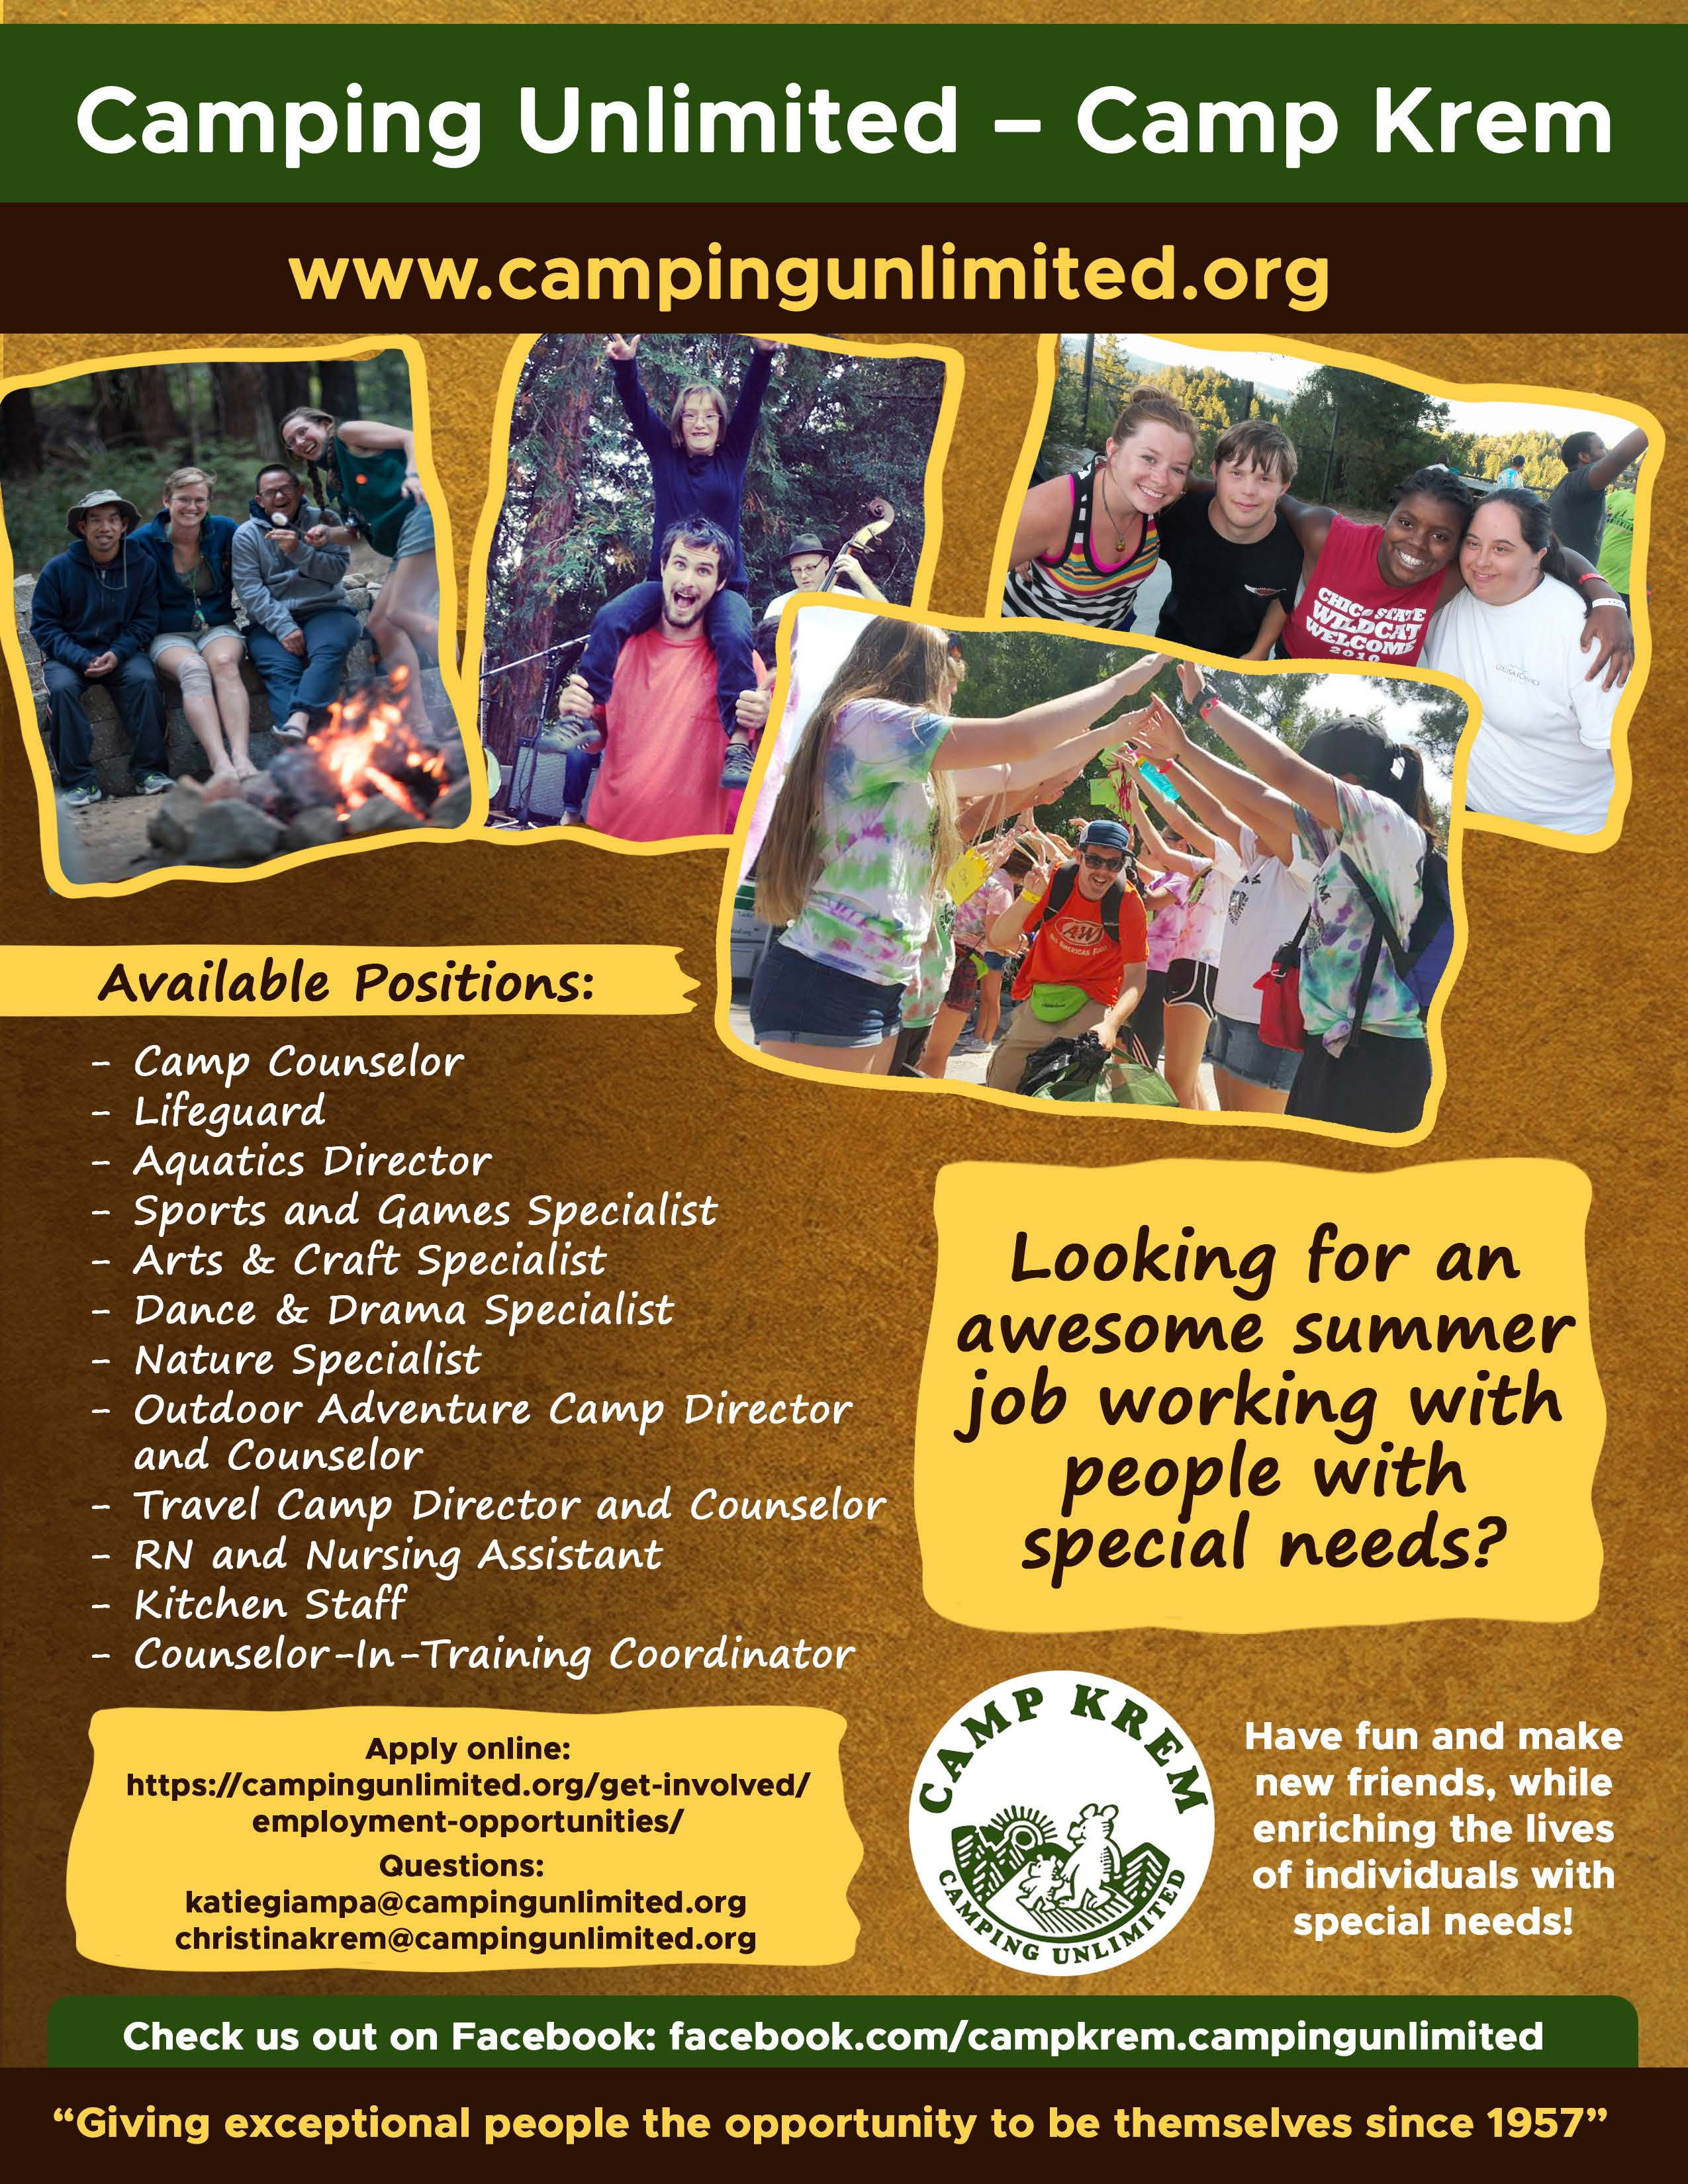 Camping Unlimited - Camp Krem www.campingunlimited.org Looking for an awesome summer job working with people with special needs? Apply online: https://campingunlimited.org/get-involved/employment-opportunities